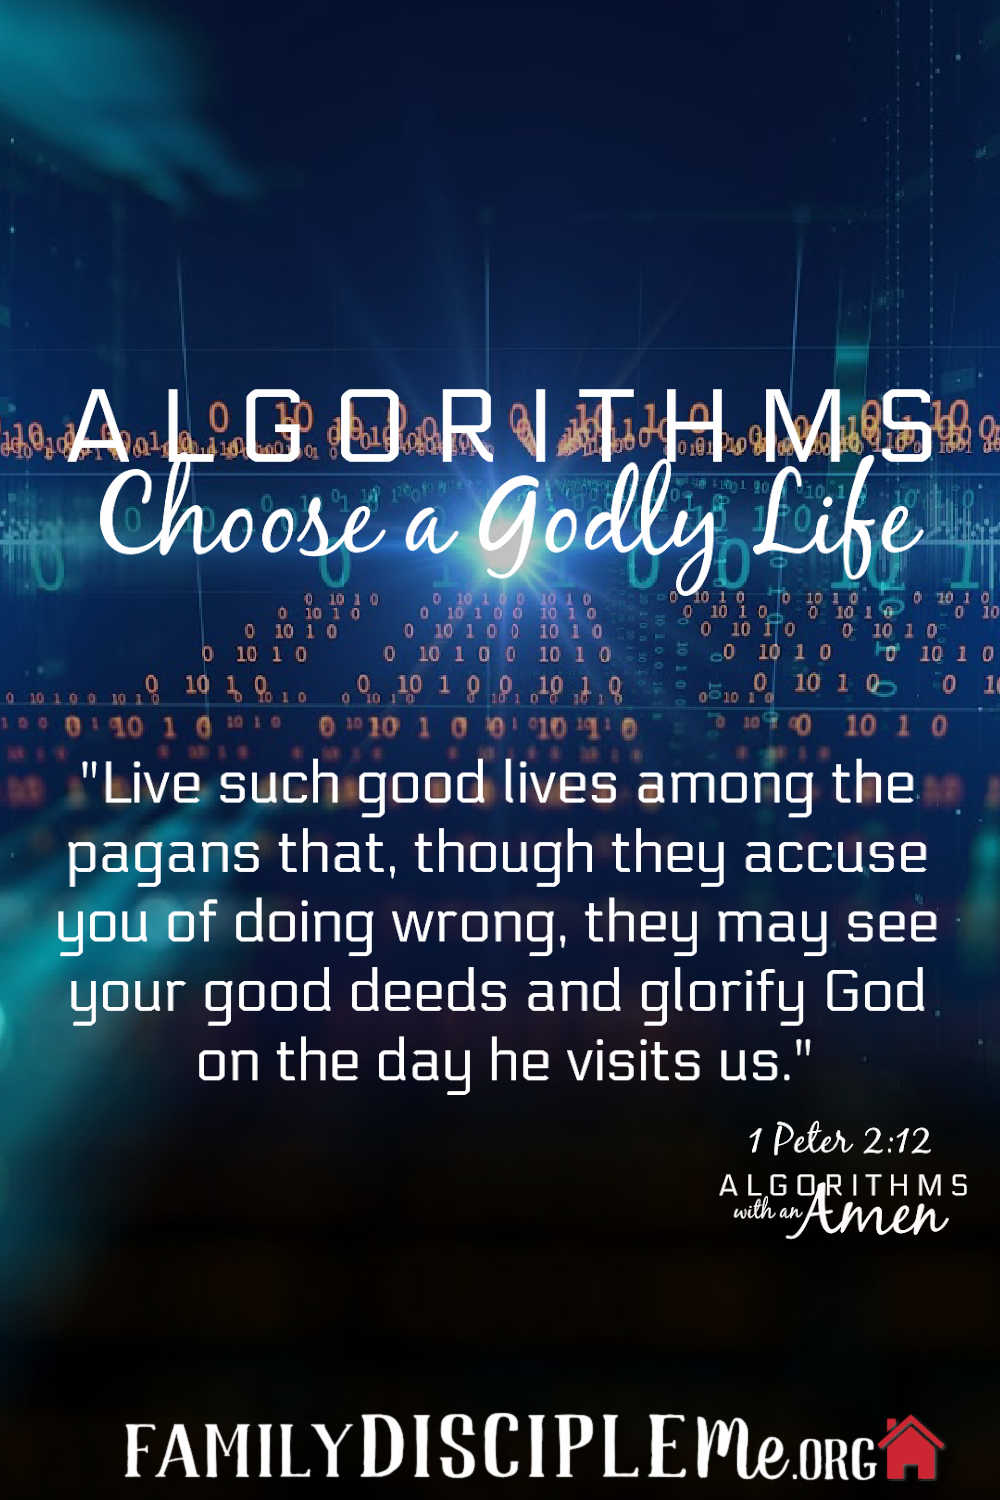 CHOOSE A GODLY LIFE